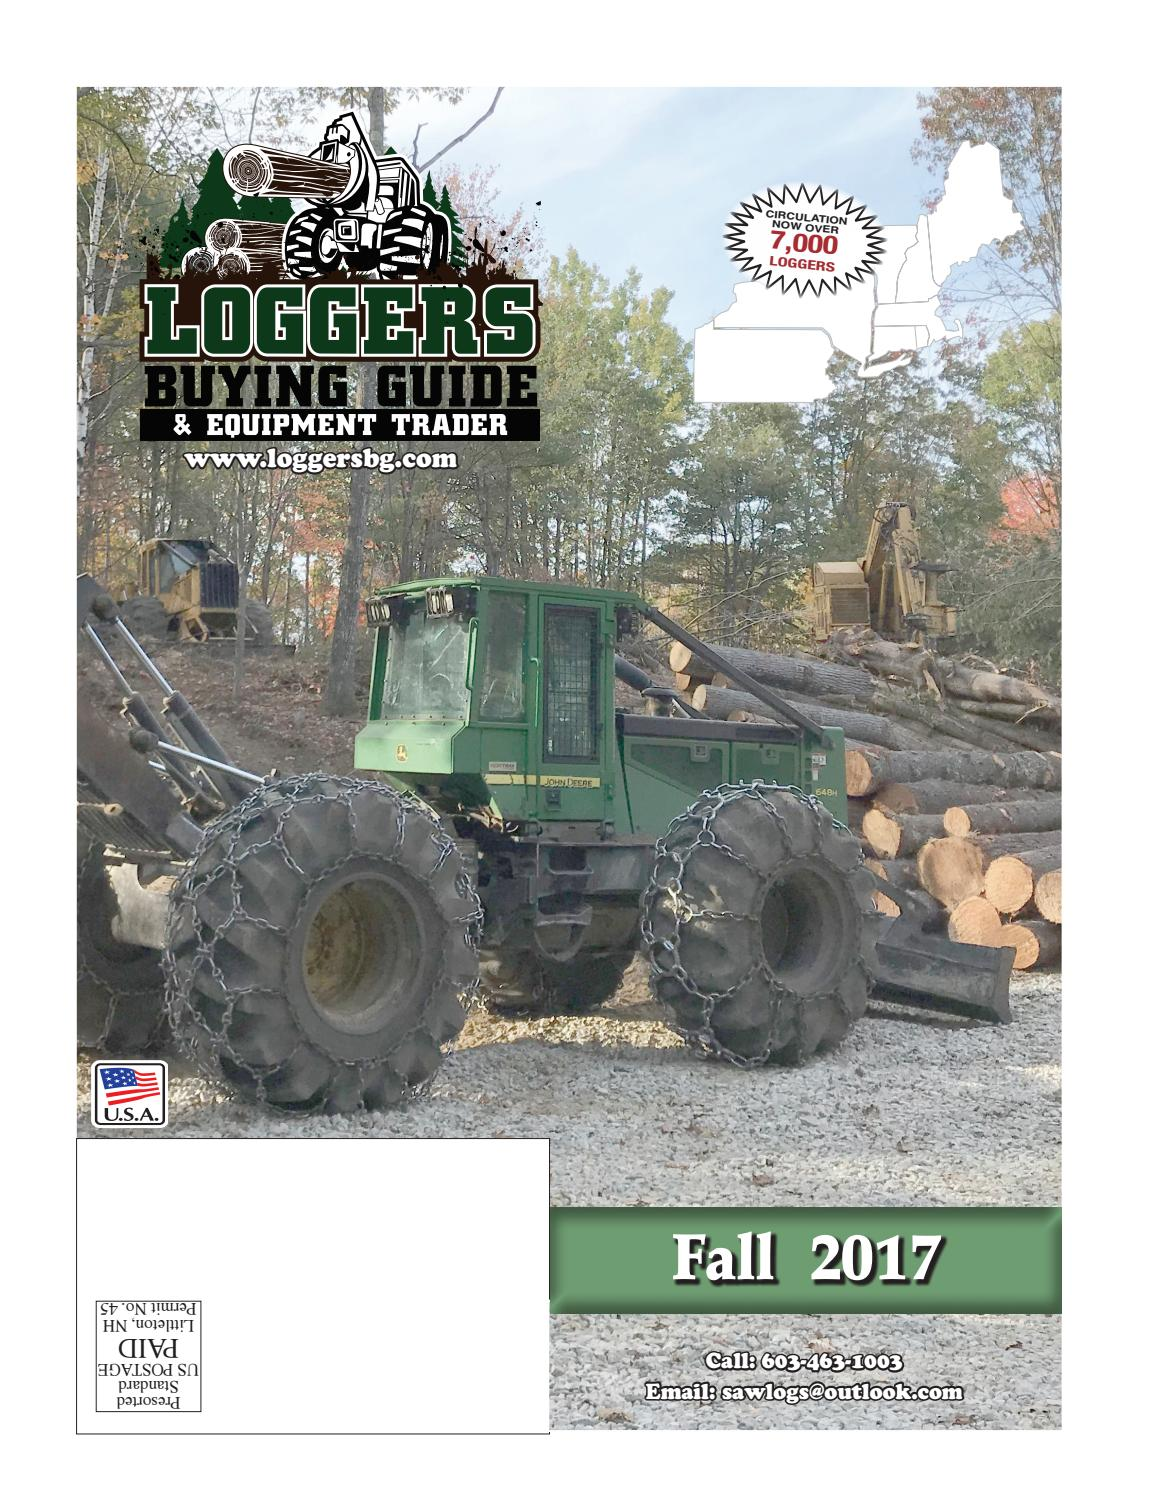 Fall Loggers Buying Guide 2017 by Log Street Publishers, LLC - issuu